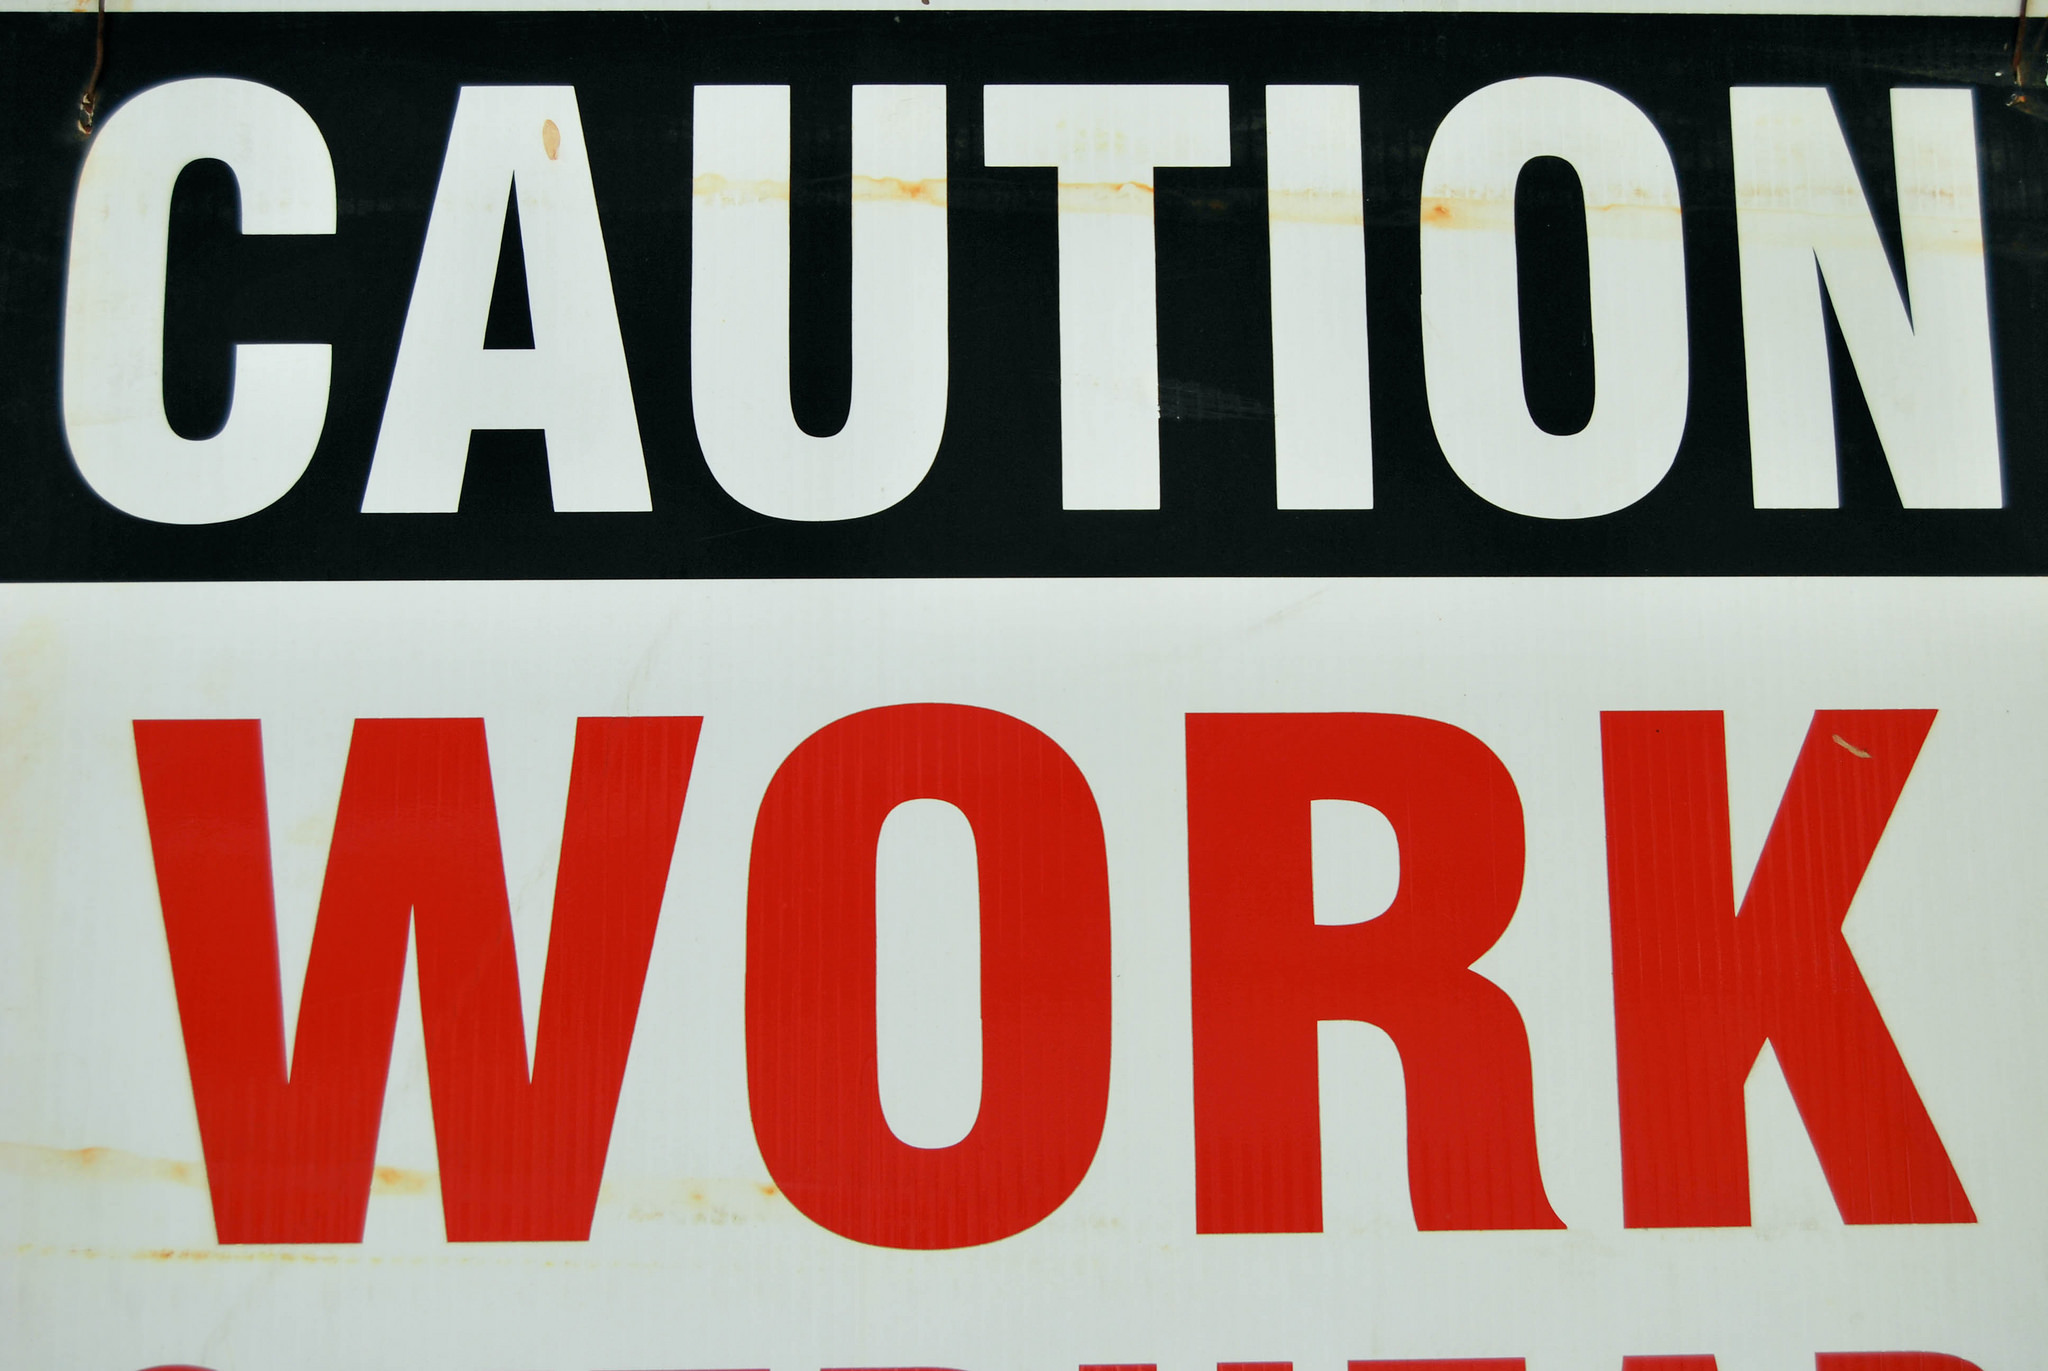 Caution: Work